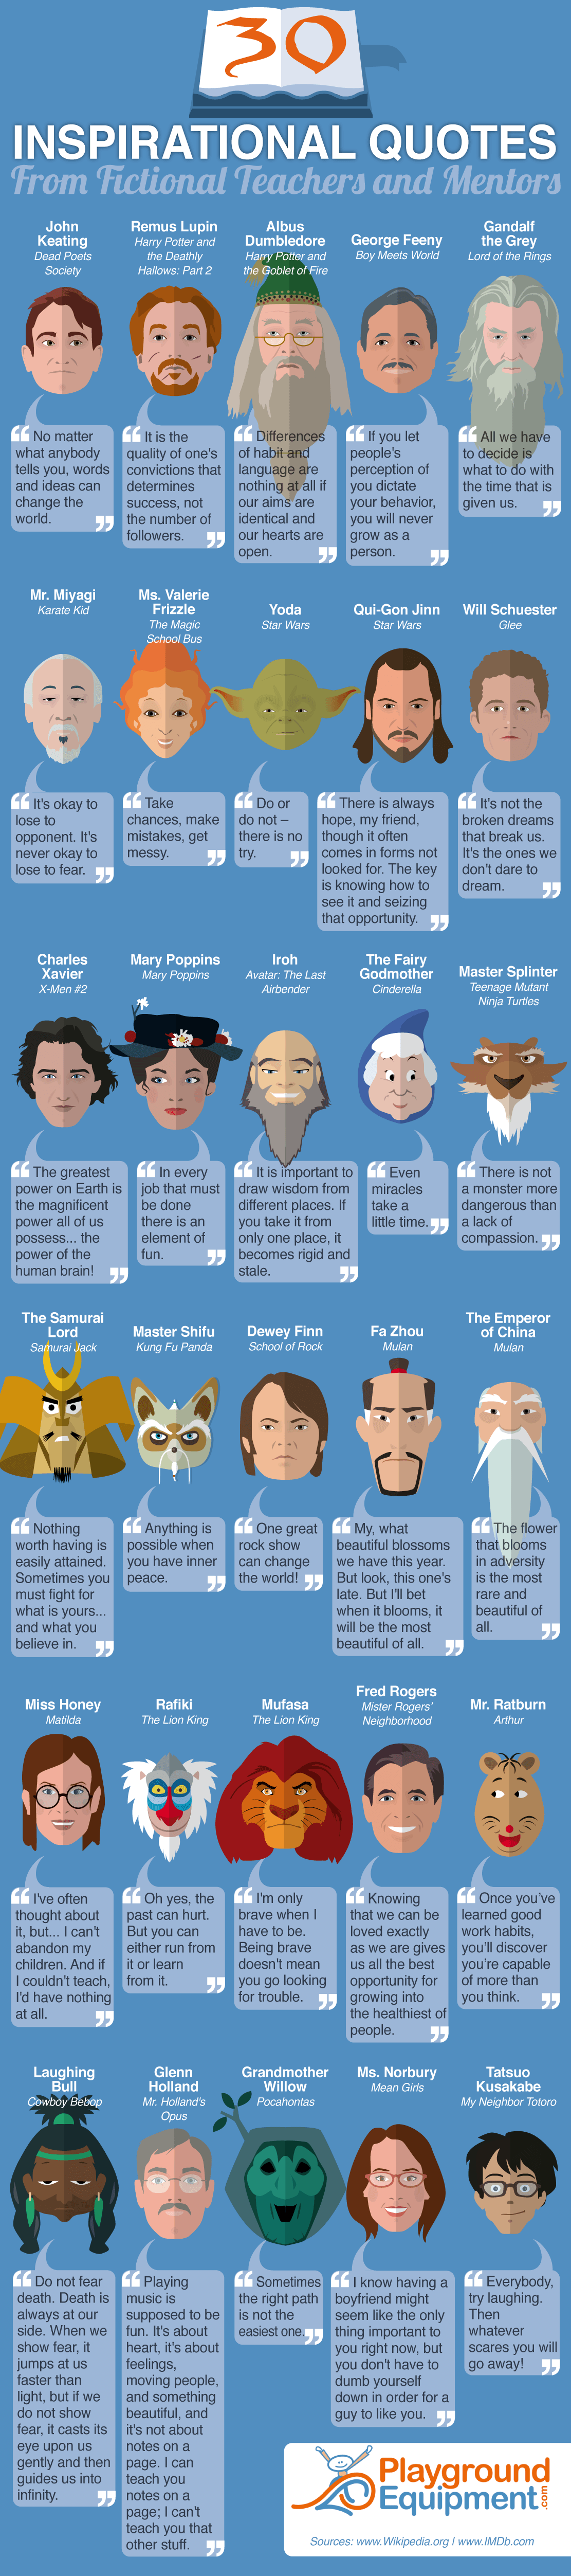 30 Inspirational Quotes from Fictional Teachers and Mentors Infographic